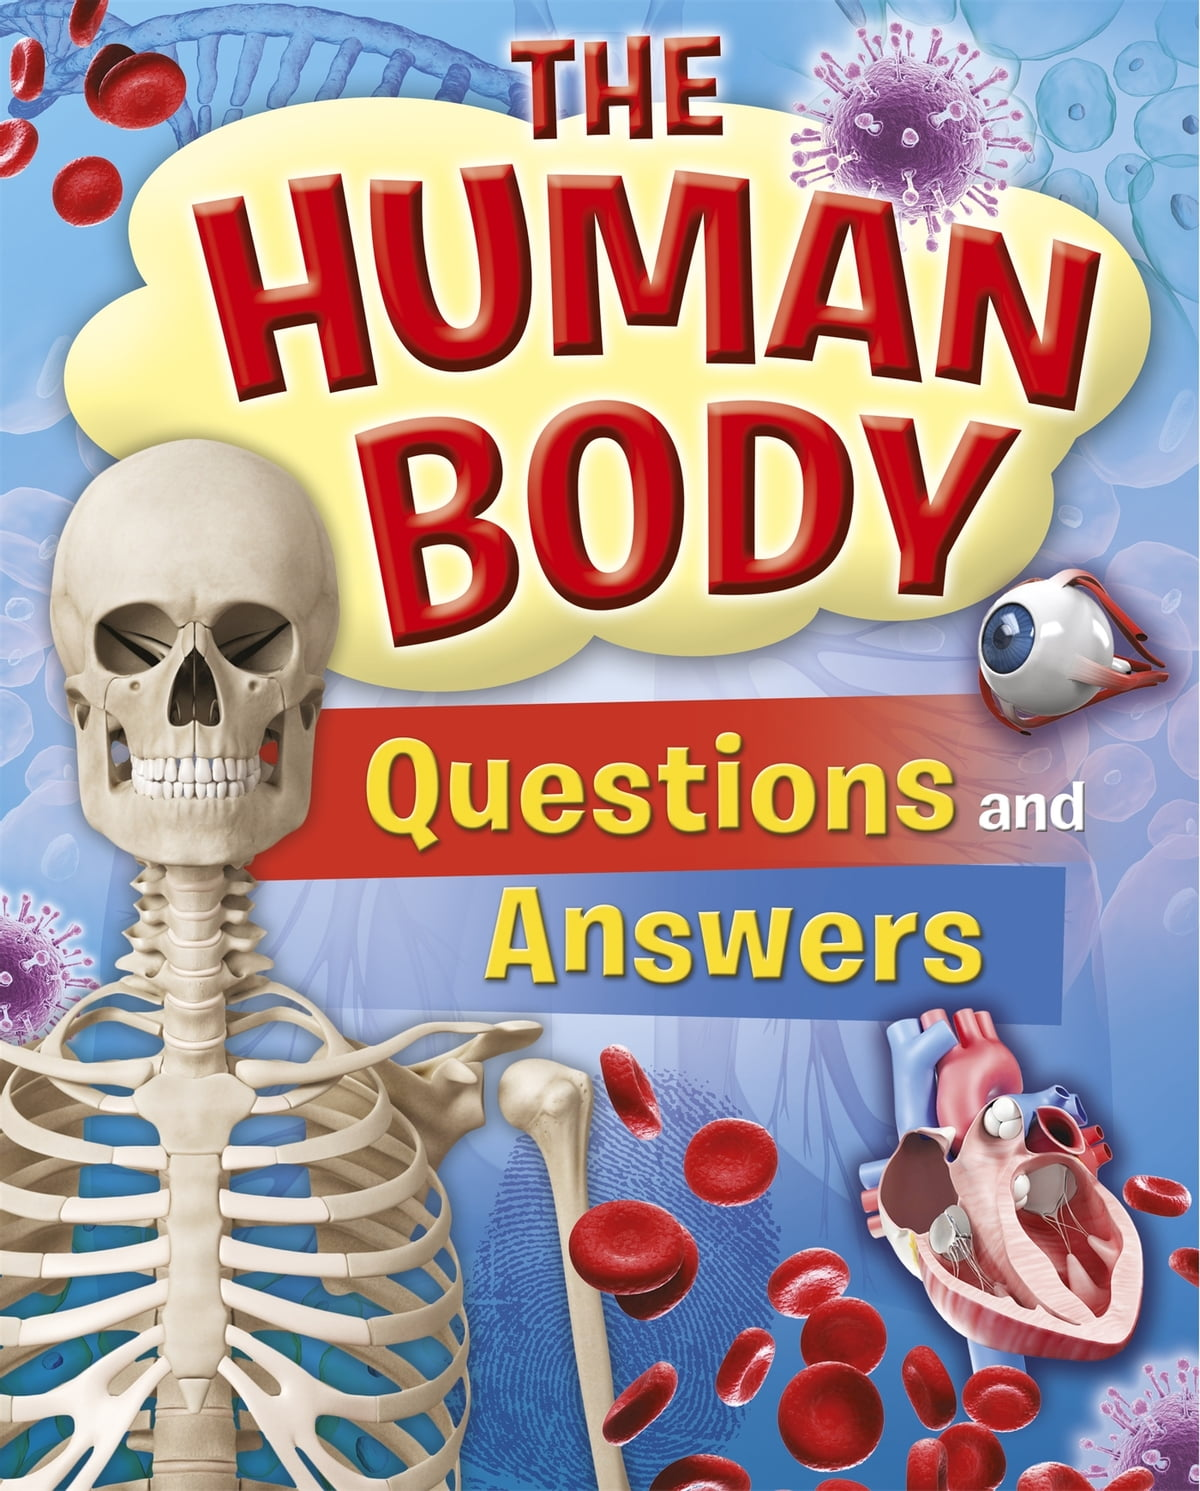 The Human Body Questions And Answers Ebook By Thomas Canavan